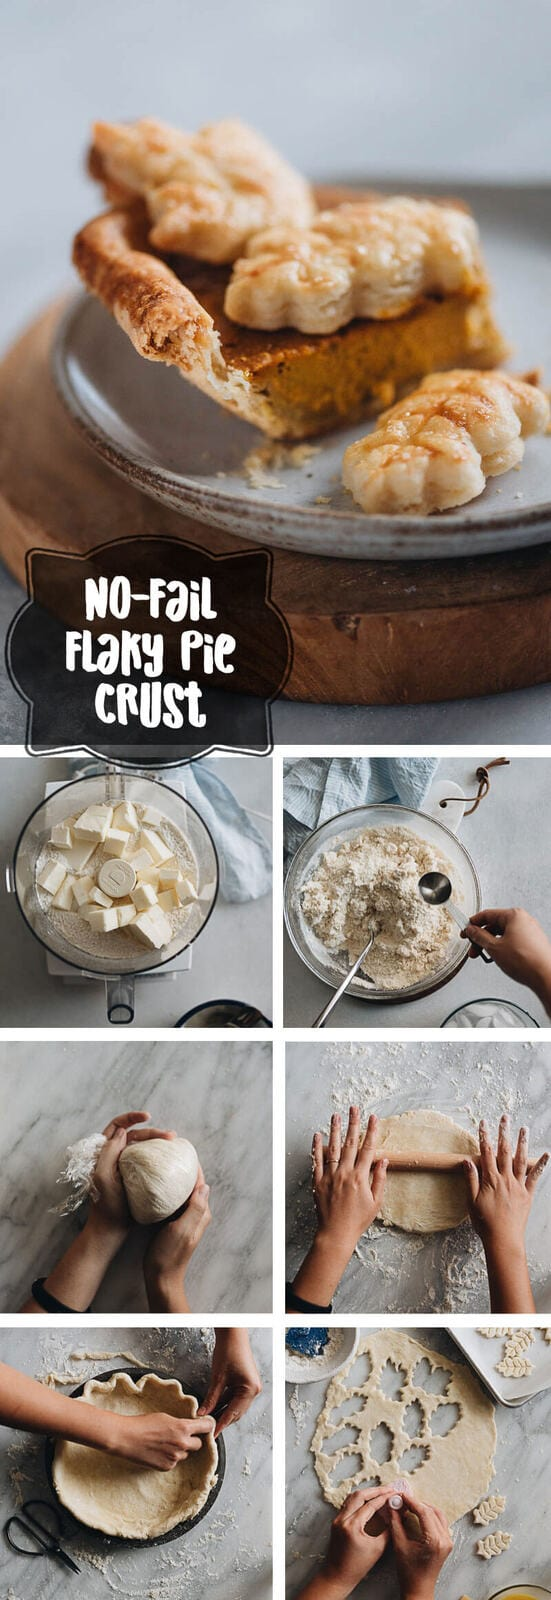 Easy Pie Crust (with Food Processor) - This easy no-fail pie crust is made with a food processor and allows you to create an extra flaky crispy pie crust every single time!